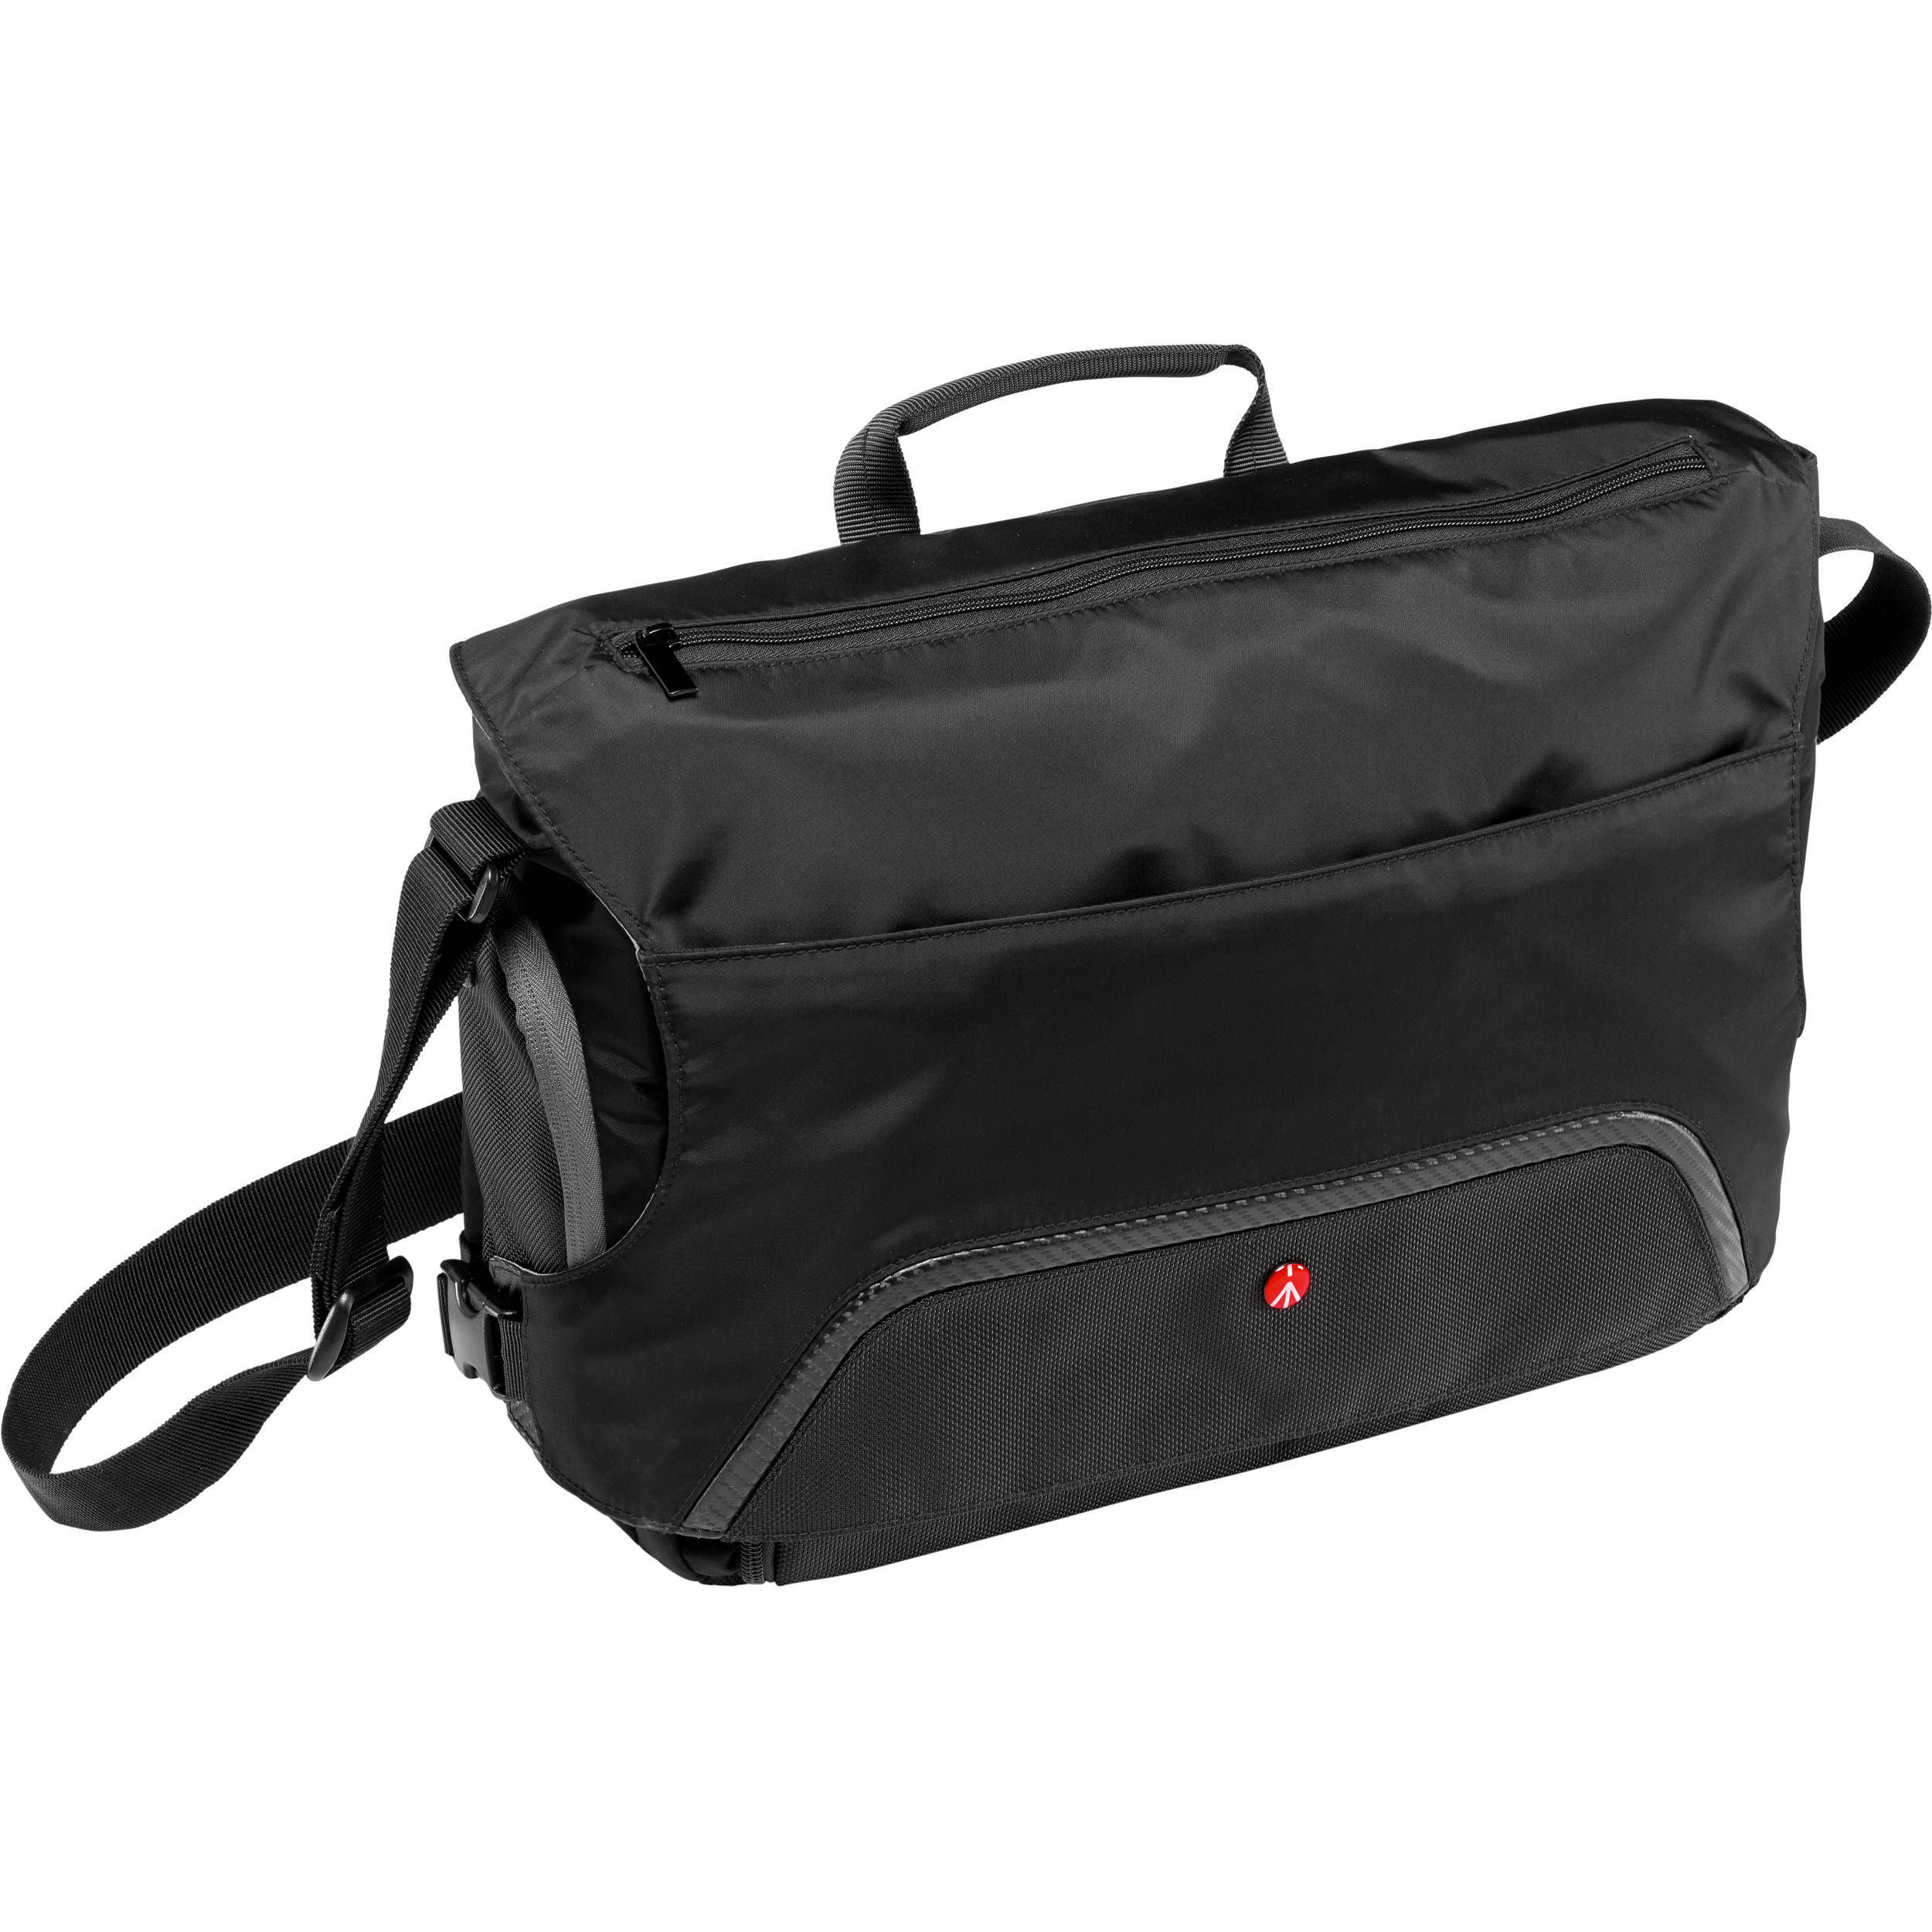 cb1dbcad18 Manfrotto Large Advanced Befree Messenger Bag (Black) MB MA-M-A